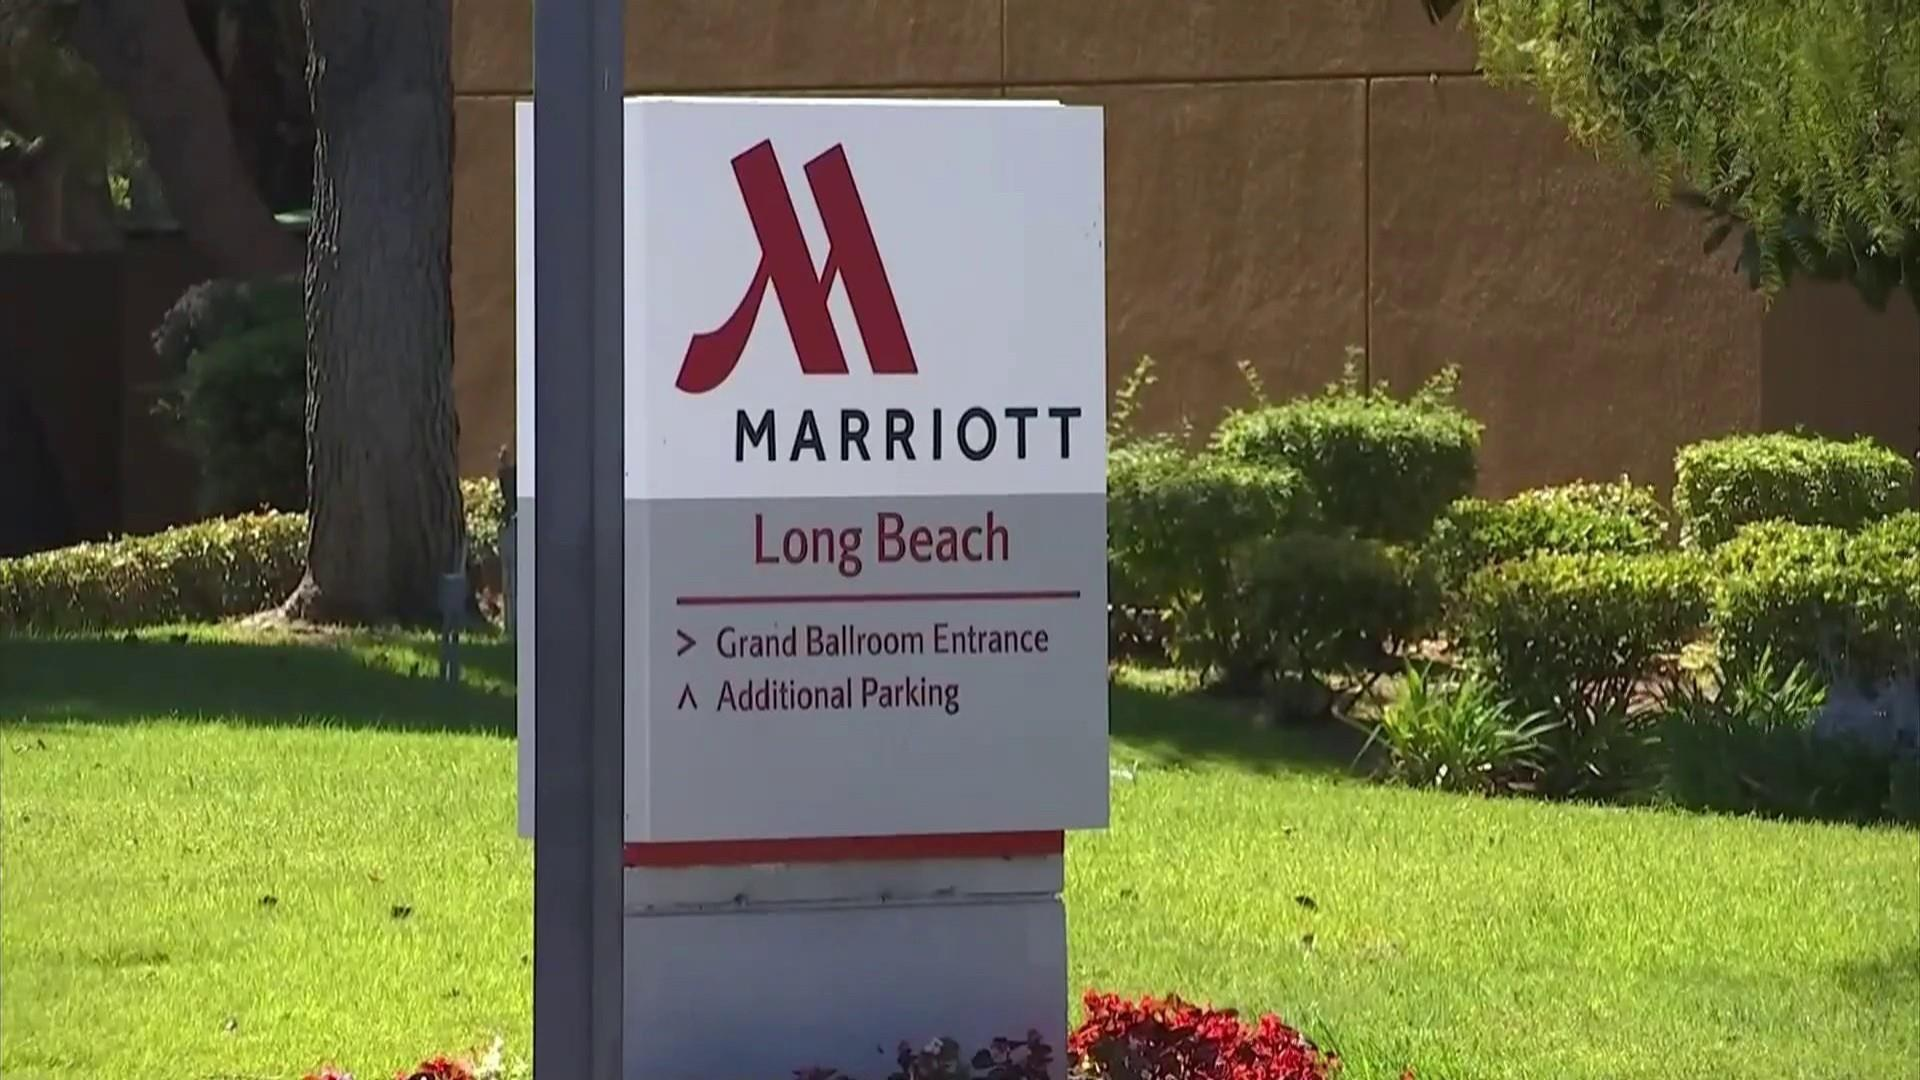 Mass shooting plot at California hotel thwarted, police say